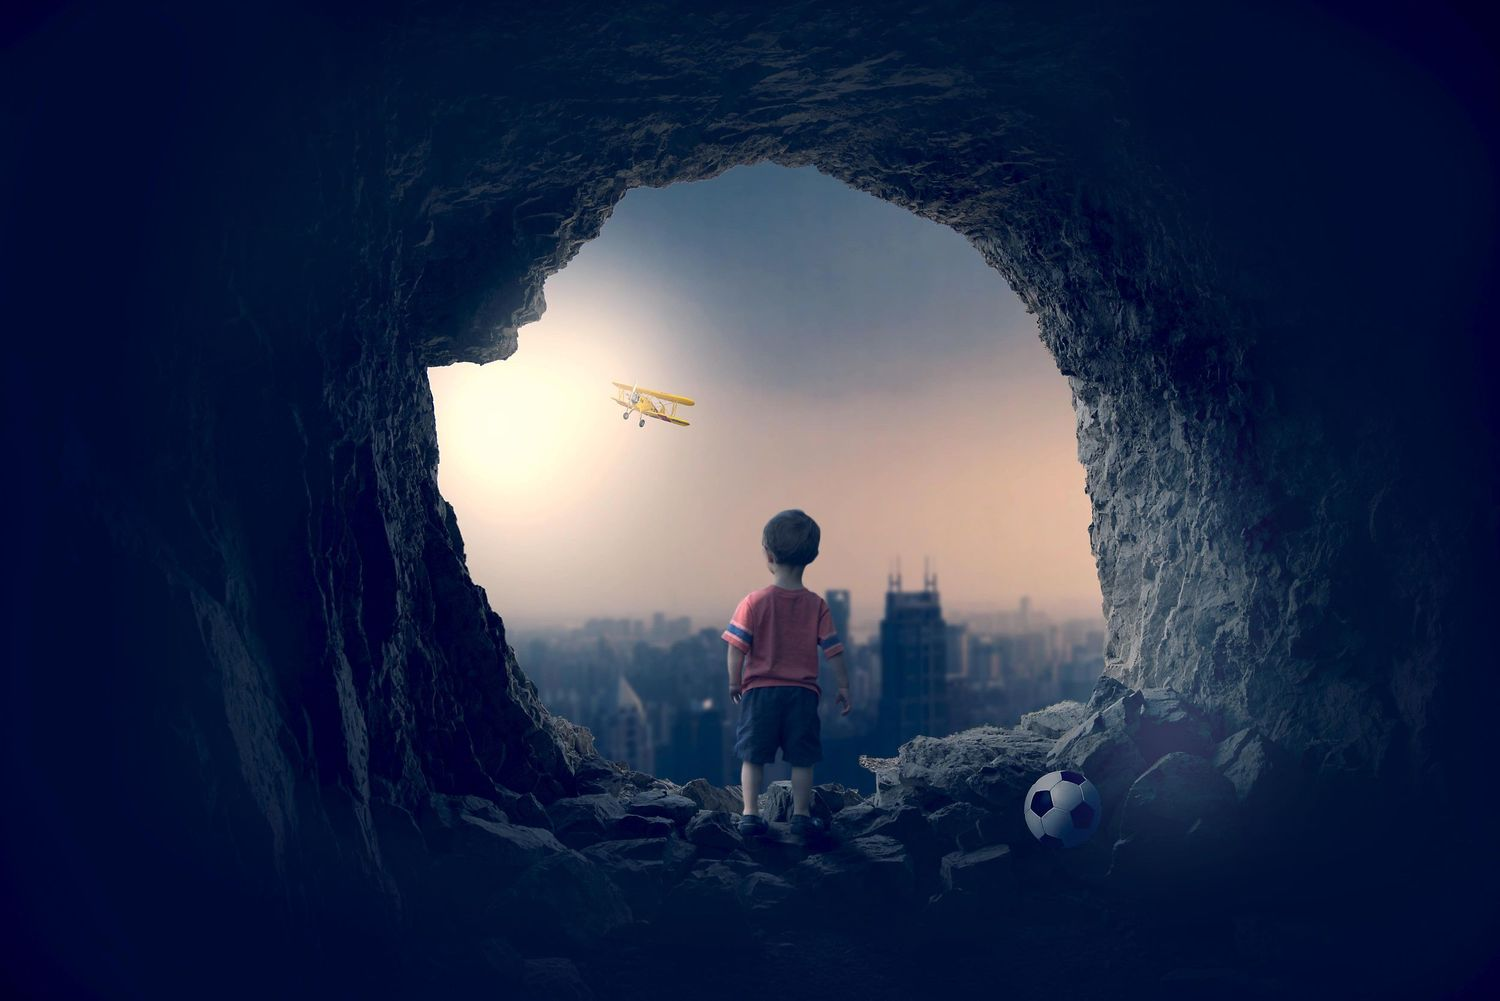 Boy in a cave looking out over the city, football